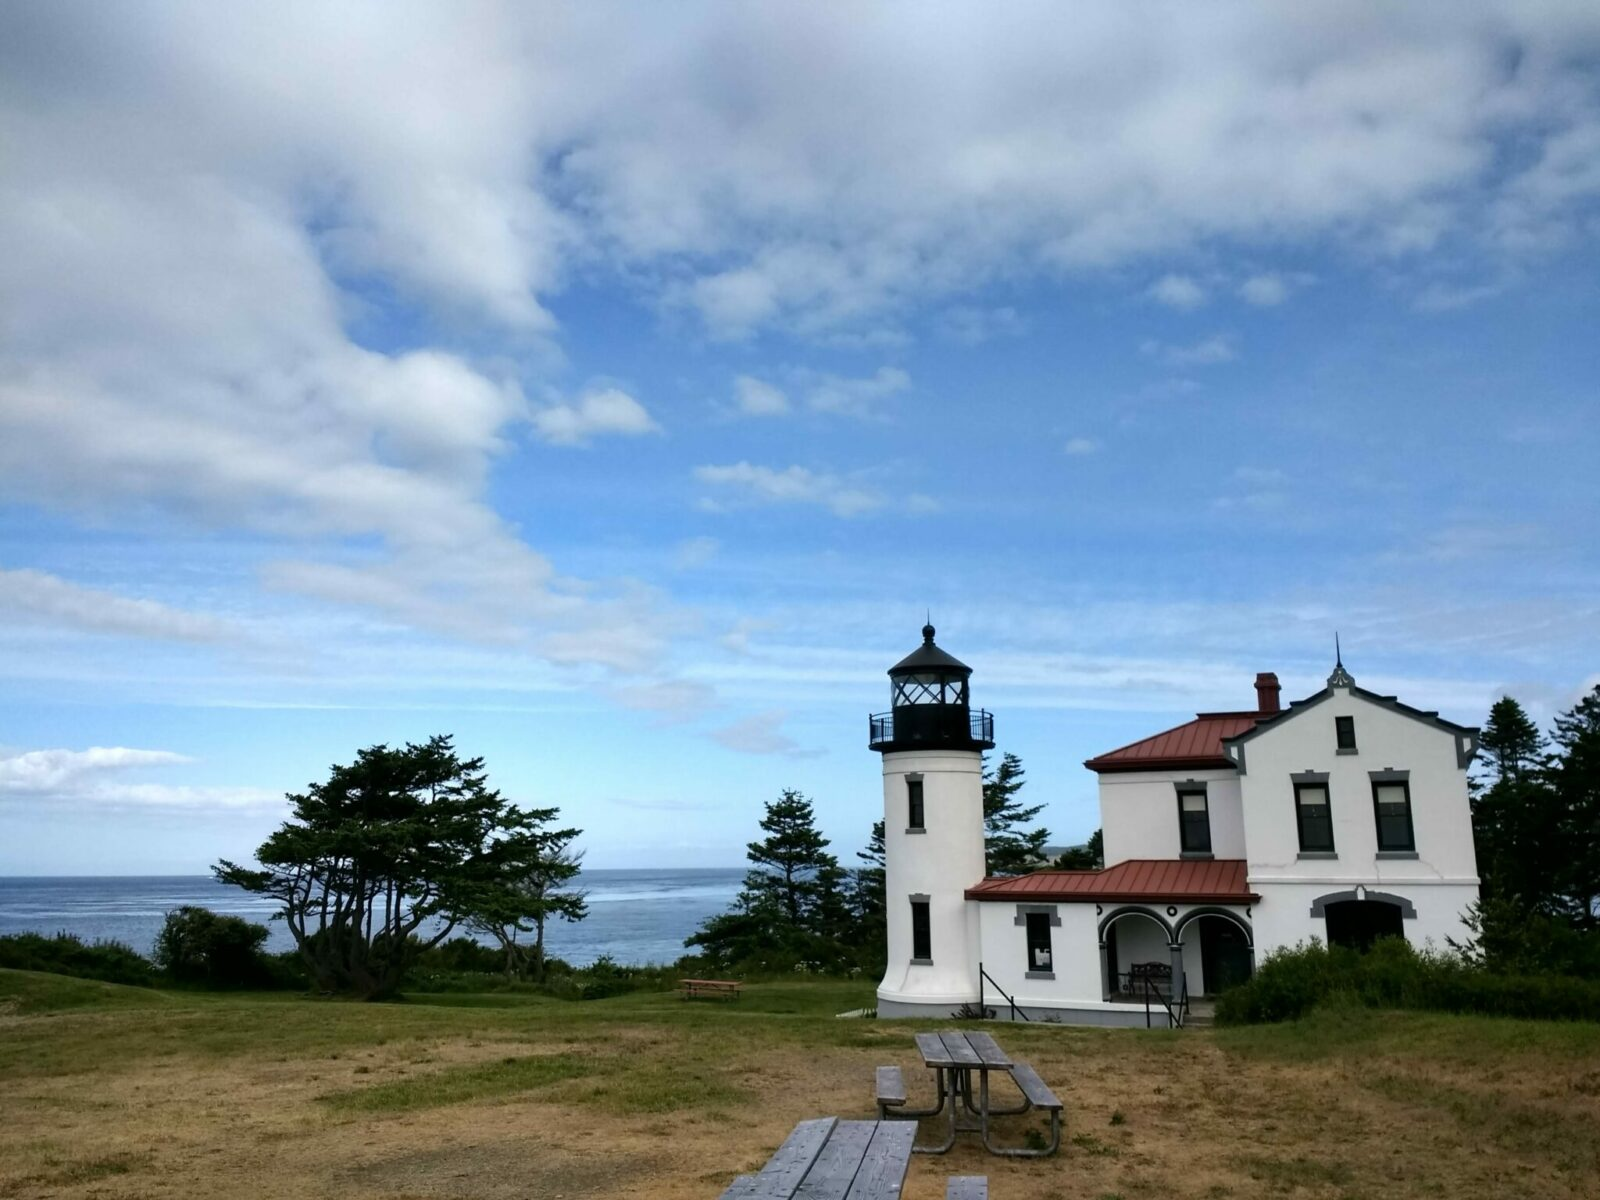 Admiralty head lighthouse on whidbey island. The lighthouse is in a field next to the rocky shore. It is white with a red roof and black trim. The actual light housing is black. There are two picnic tables in the foreground and some evergreen trees around the lighthouse. The partly cloudy sky and ocean are in the background